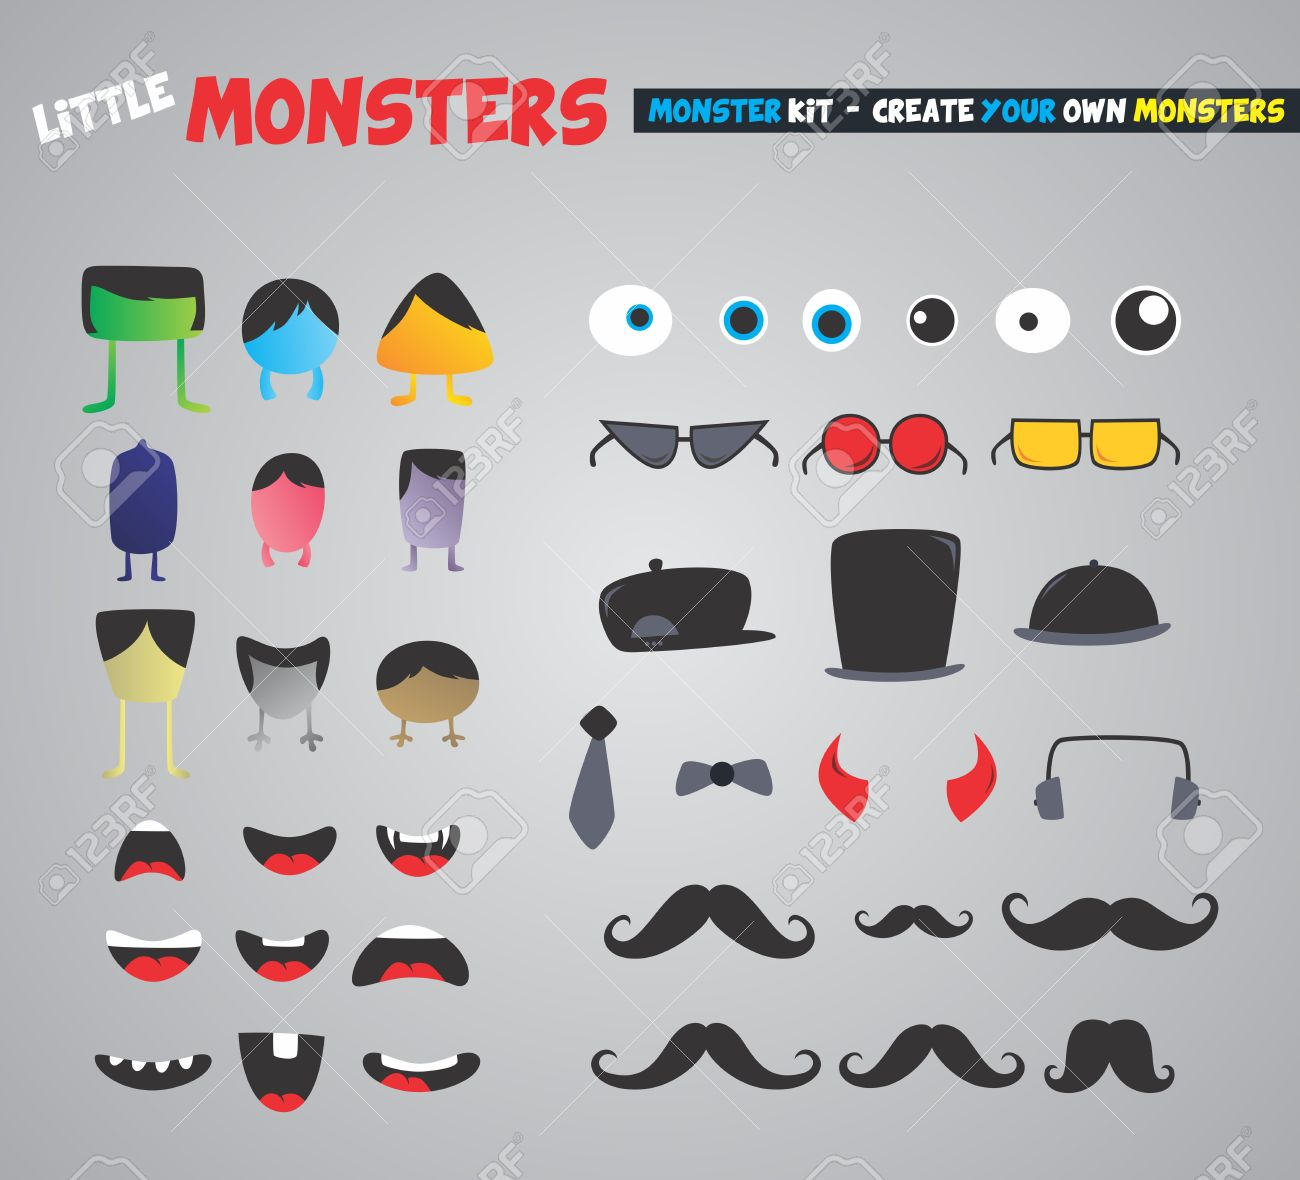 Create Your Own Monster.